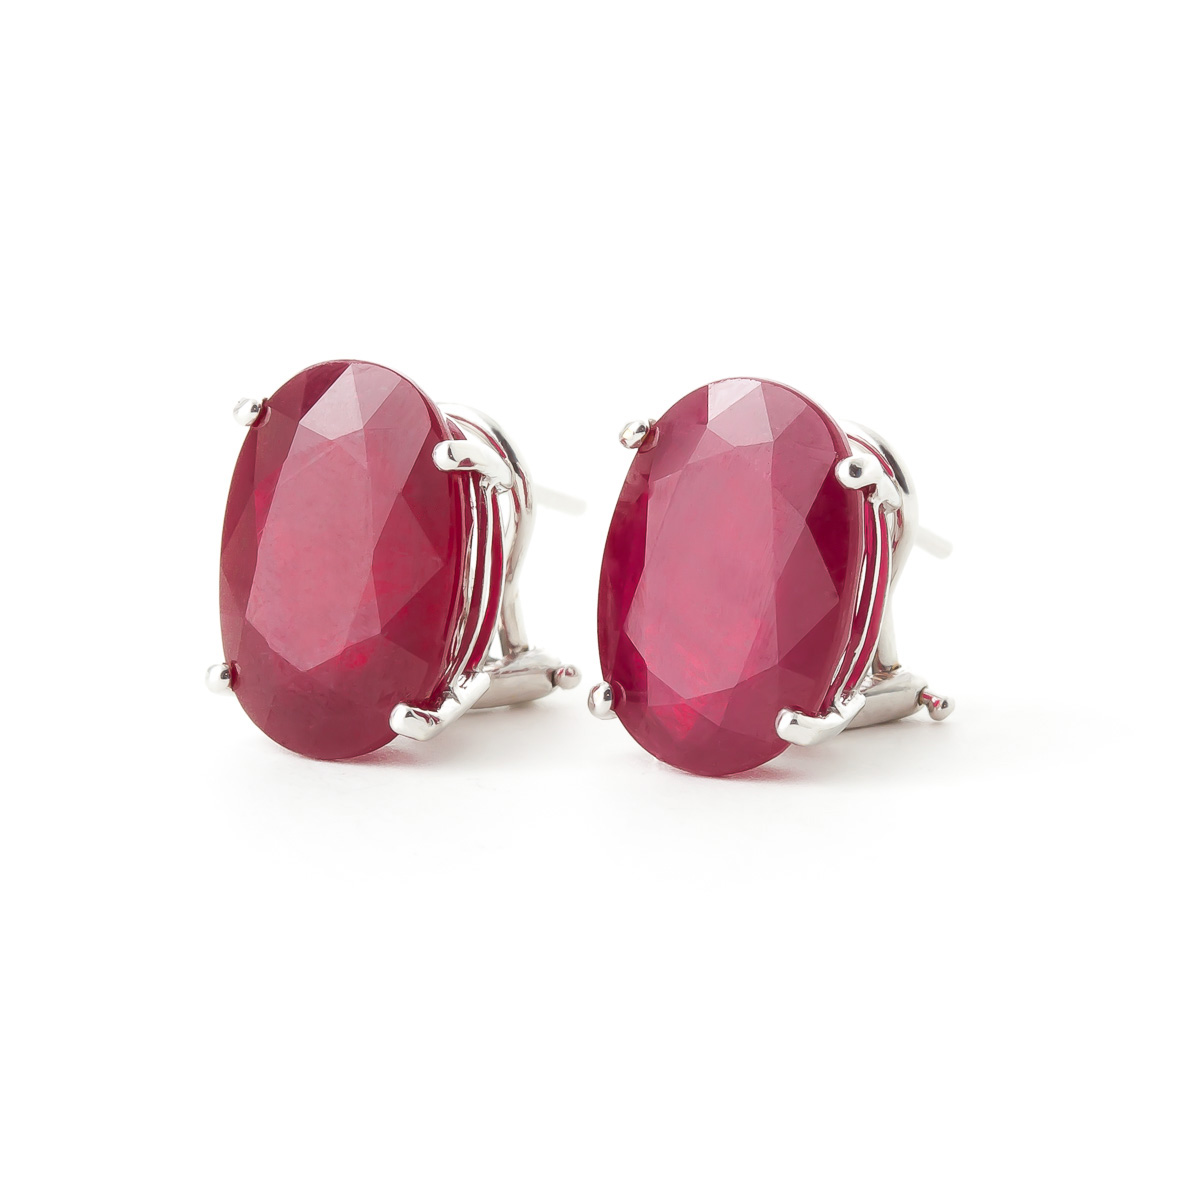 Ruby Stud Earrings 15 ctw in 9ct White Gold